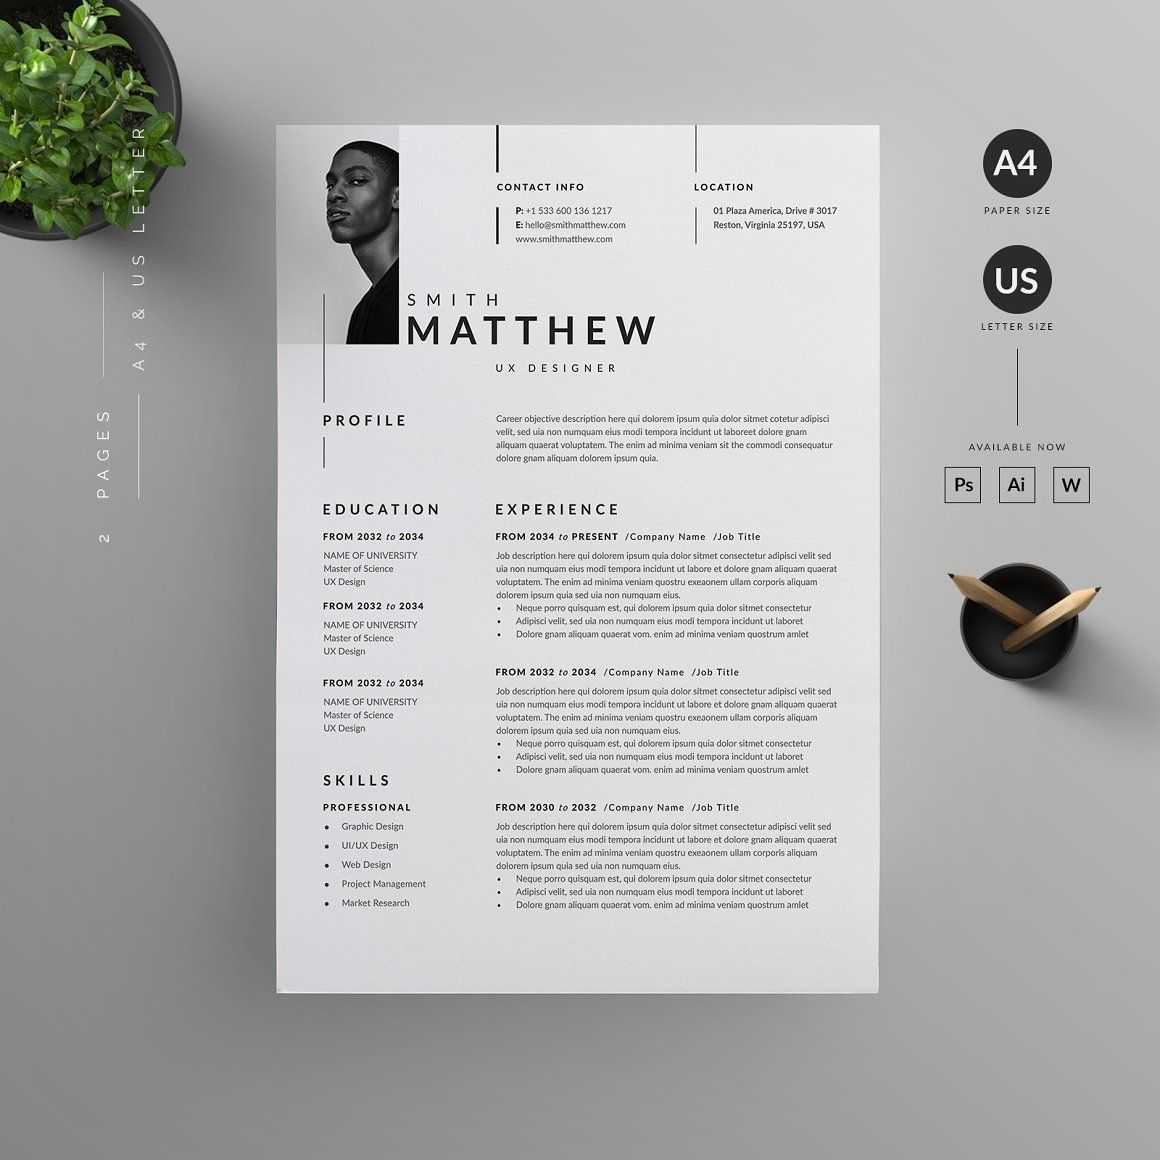 Professional Resume Cv Template Cv Resume For Your Job Application It Is Easily Editab In 2021 Strong Typography Graphic Design Background Templates Resume Templates